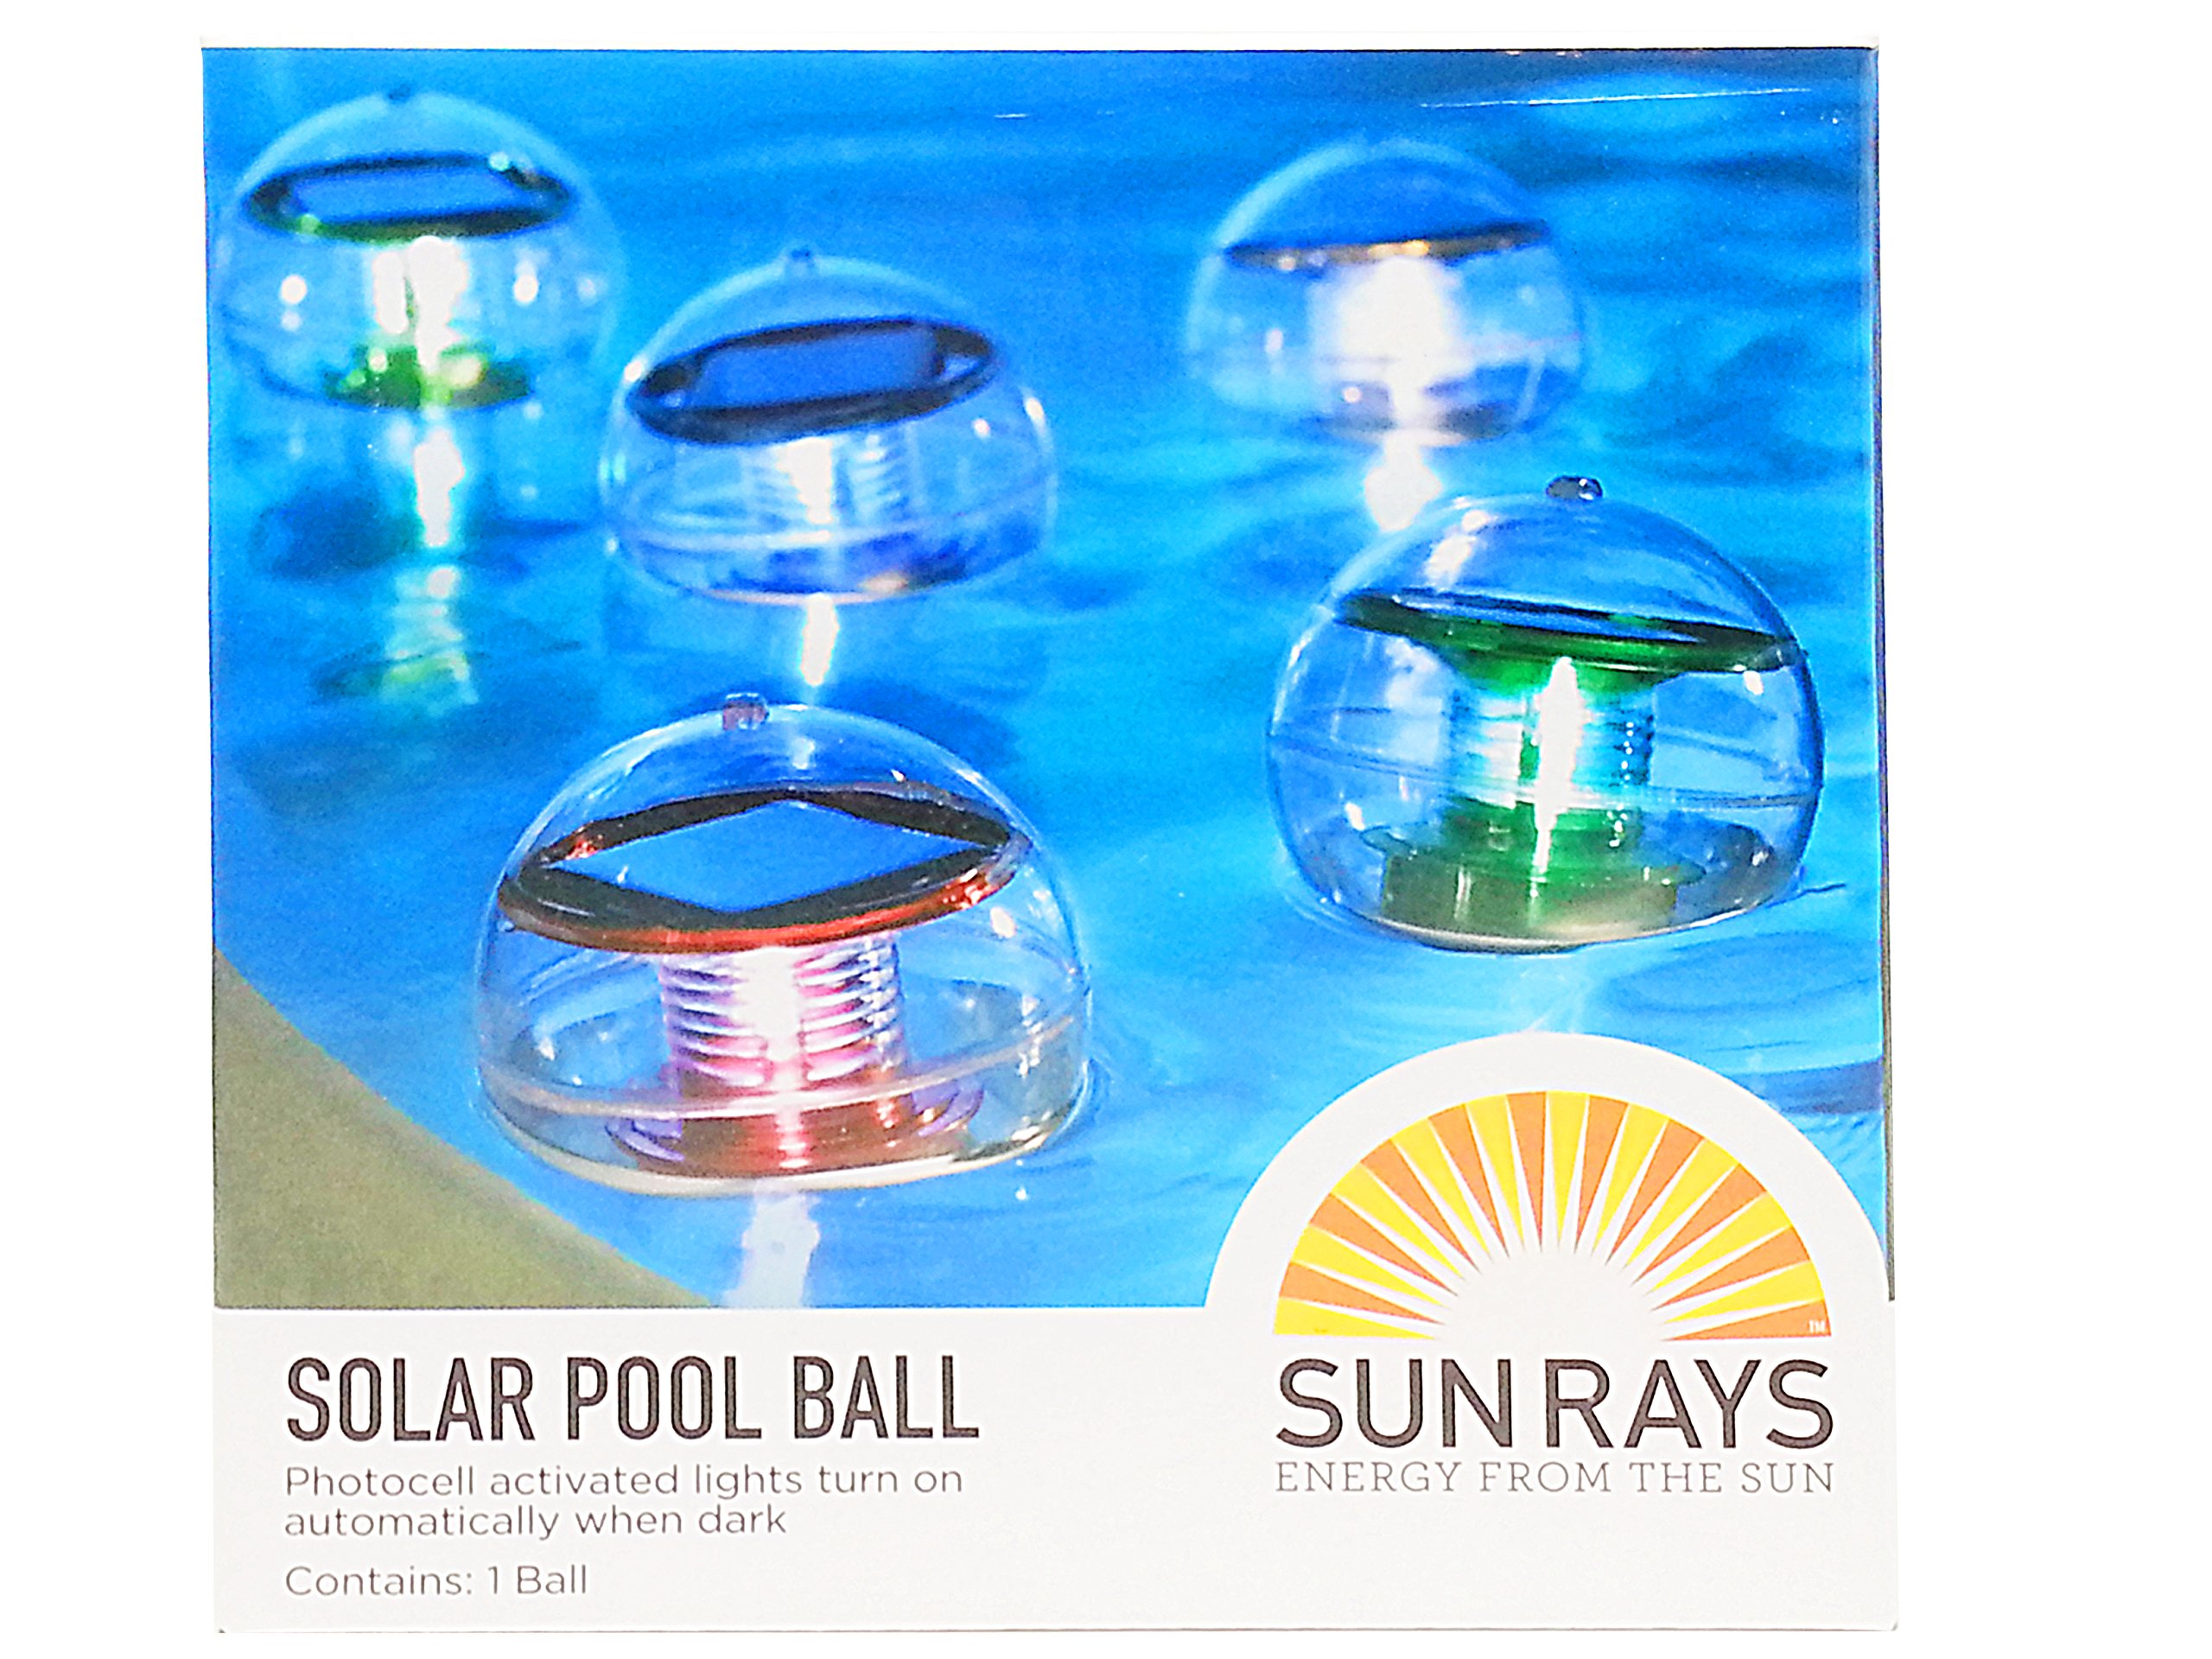 Solar Swimming Pool Lighting Ball, 4.3 inches Diameter –Floating or Hanging Light for Pool Garden Outdoor Landscape– Green